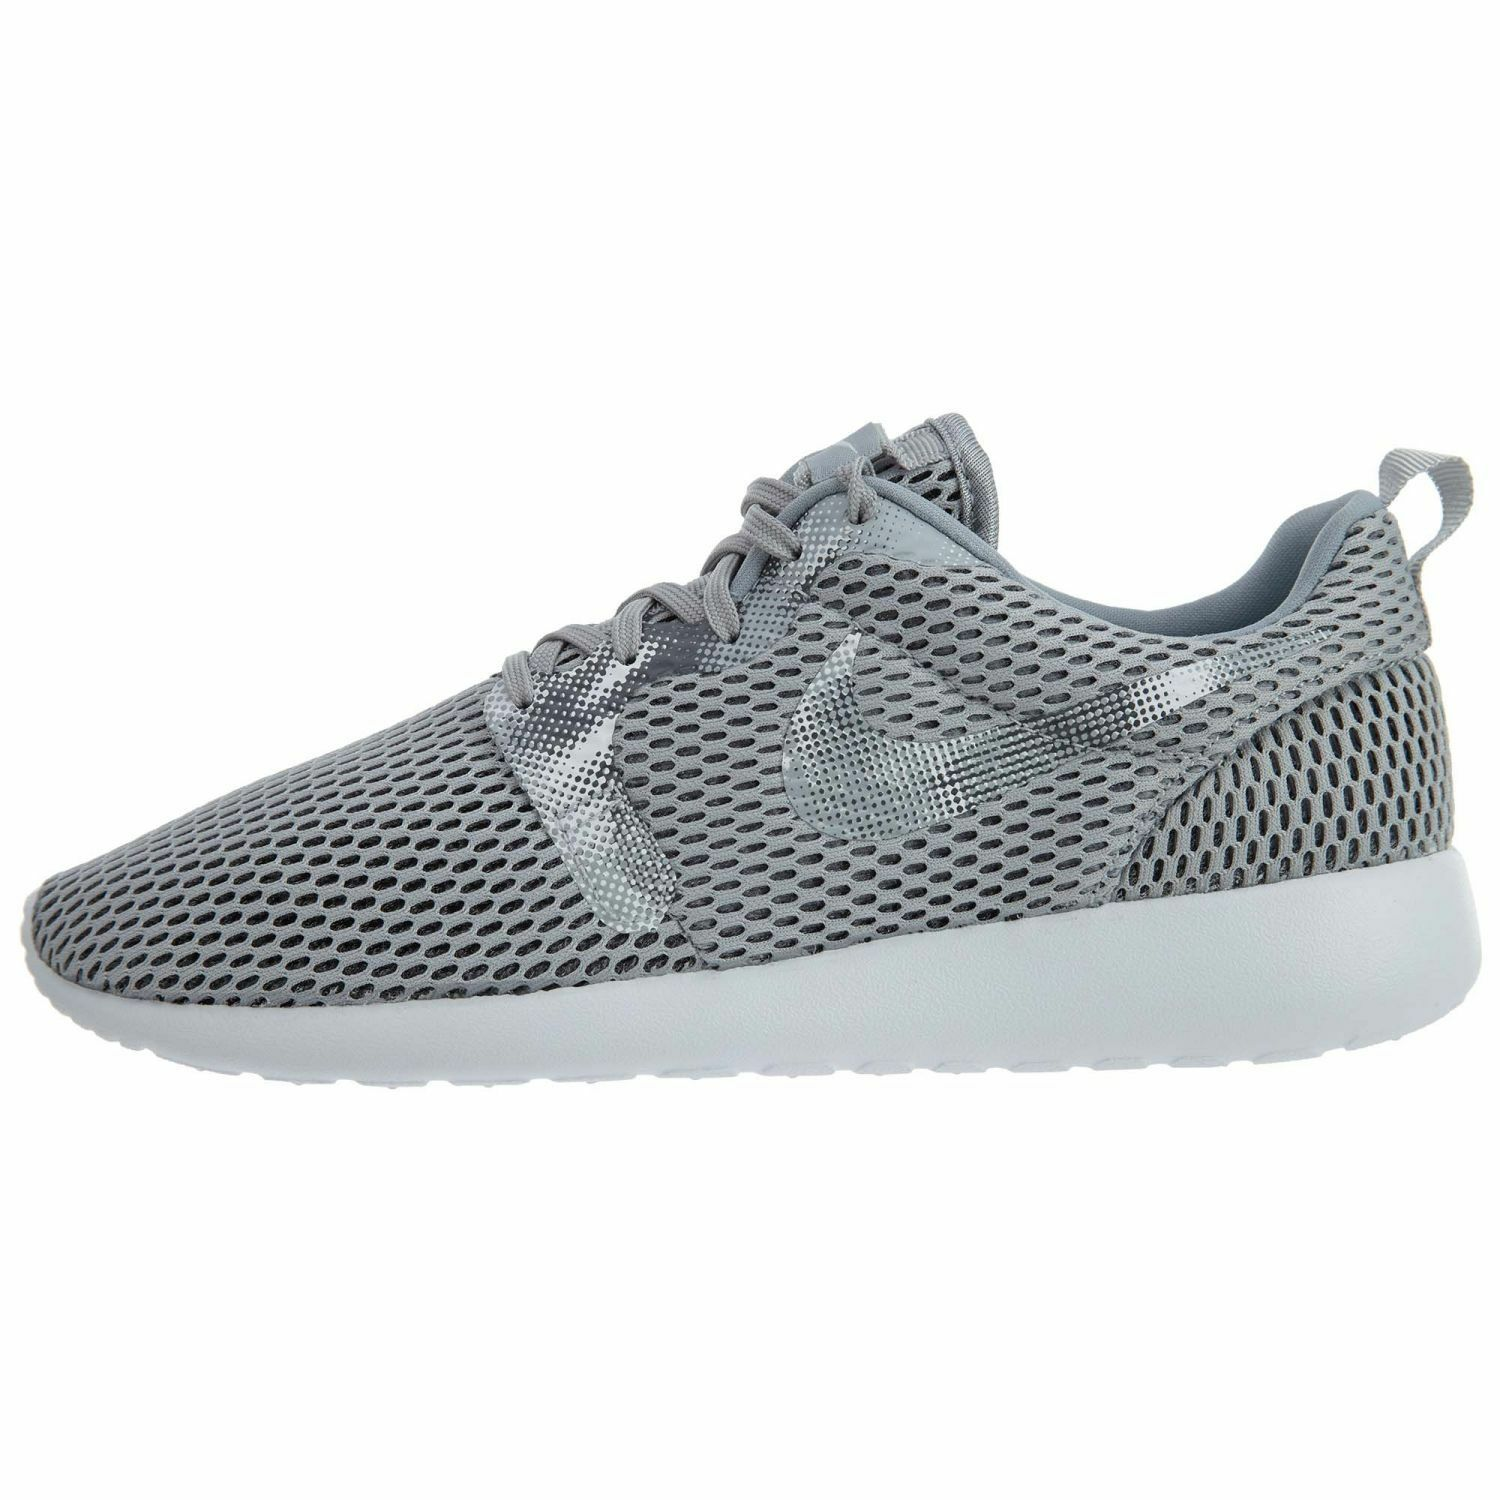 Nike Roshe One Hyperfuse BR GPX Mens 859526-001 Grey Running Shoes Size 9